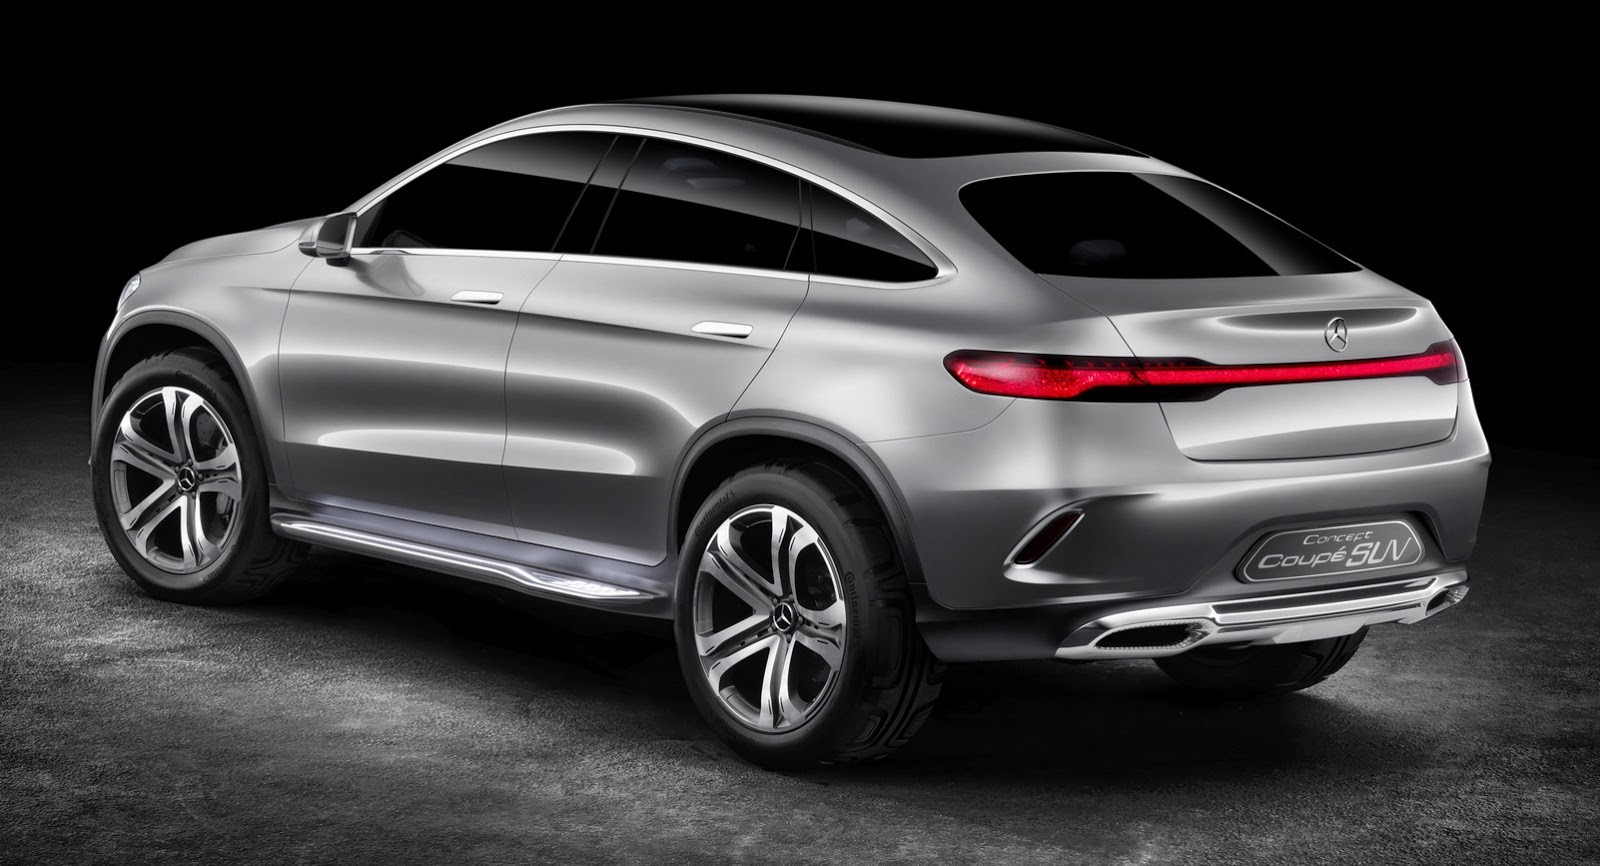 Compare the Mercedes Concept Coupe SUV to the BMW X6 and See the